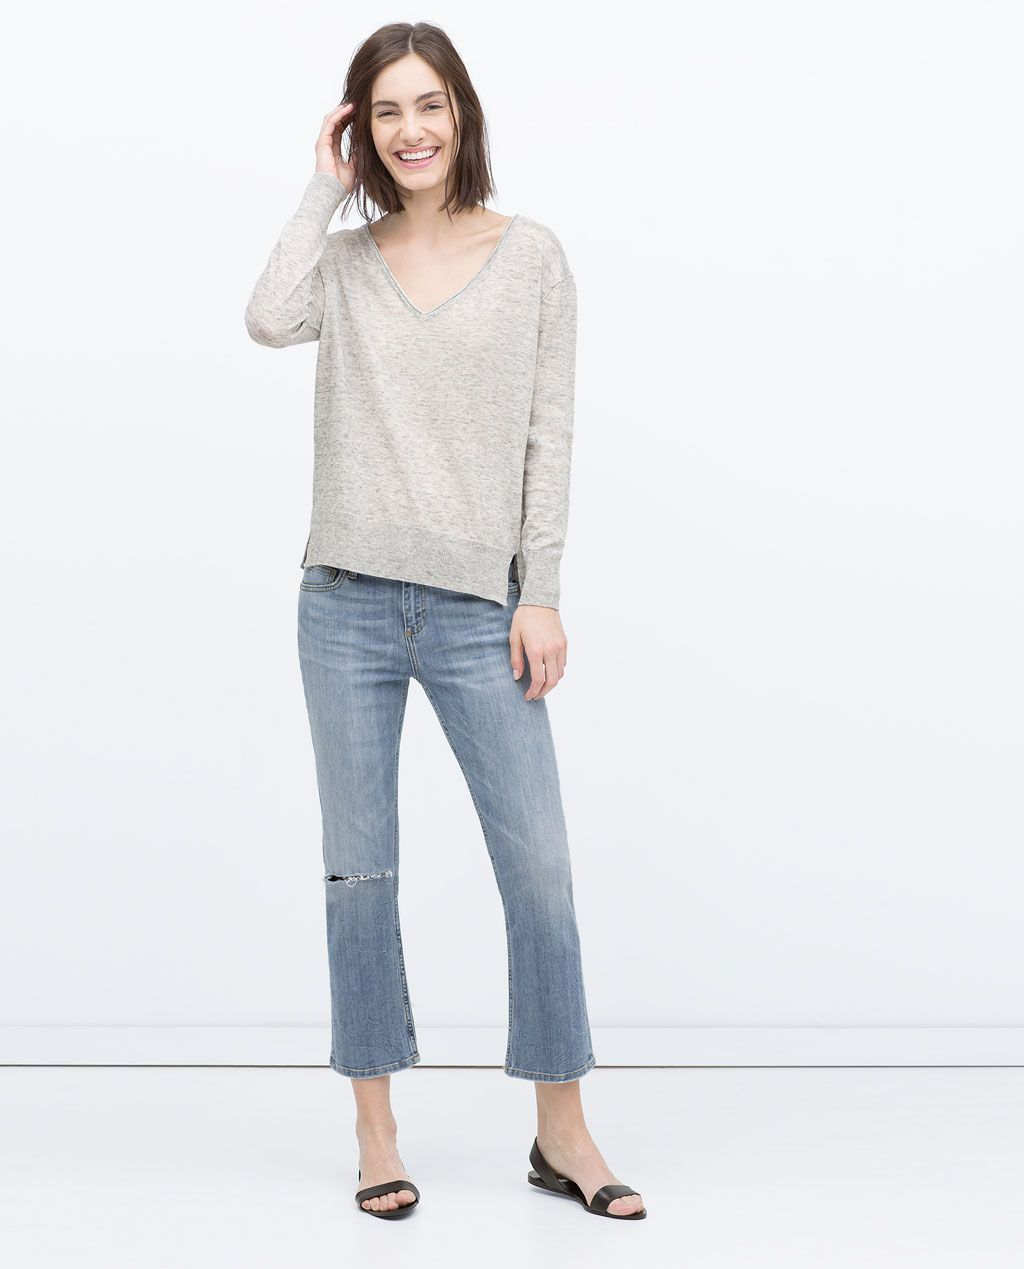 ZARA COLLECTION AW15 KNITTED SWEATER WITH VENTS Fall 2015